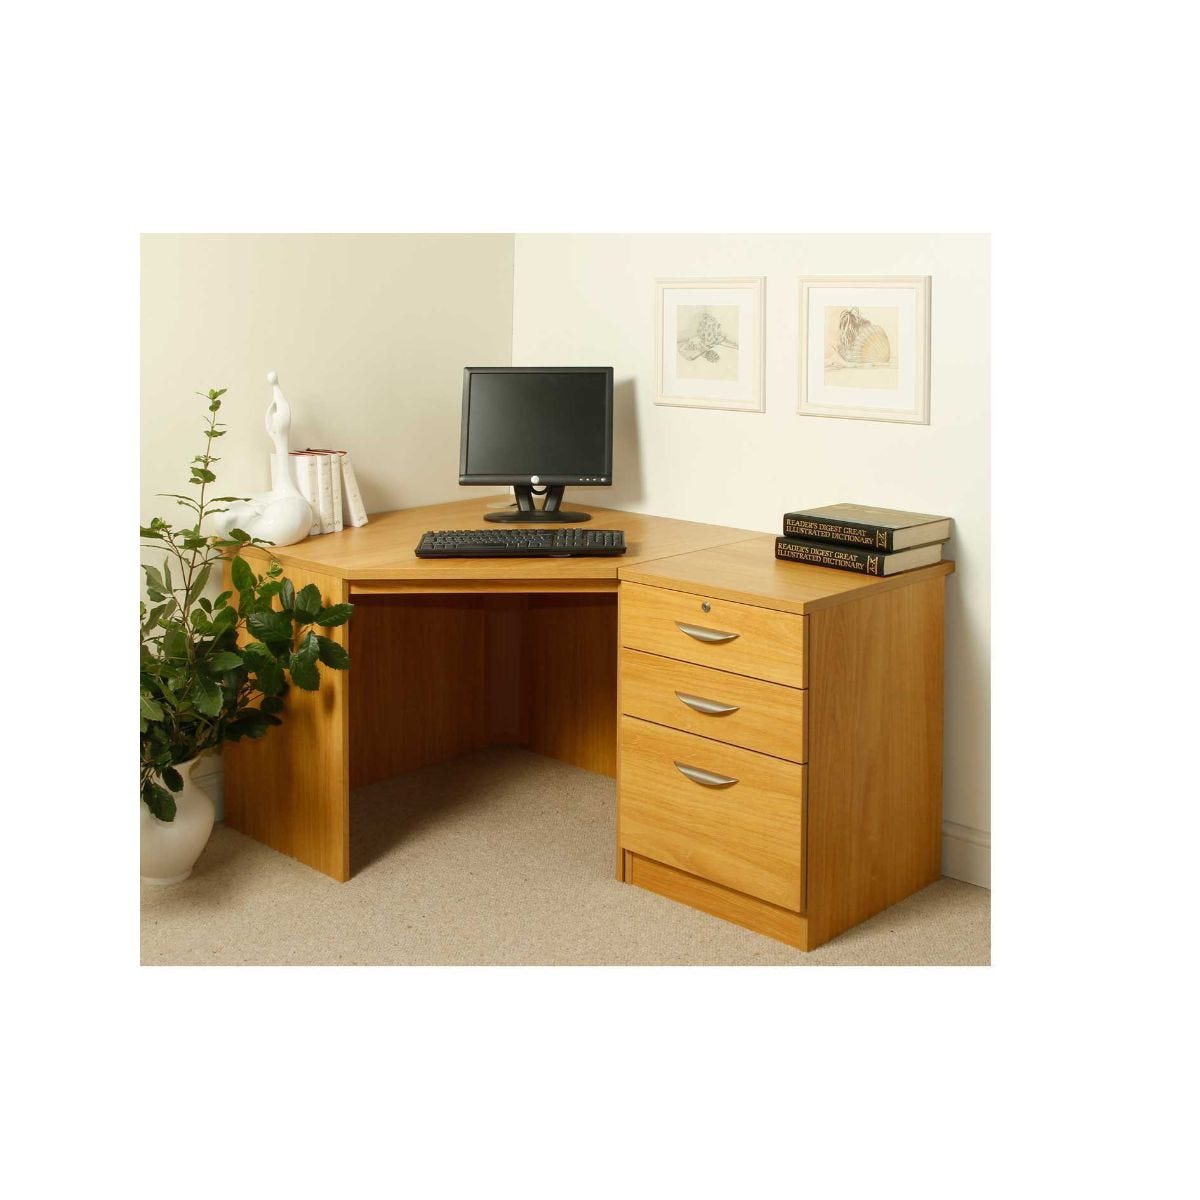 R White Burne Jones Desk Workstation, White